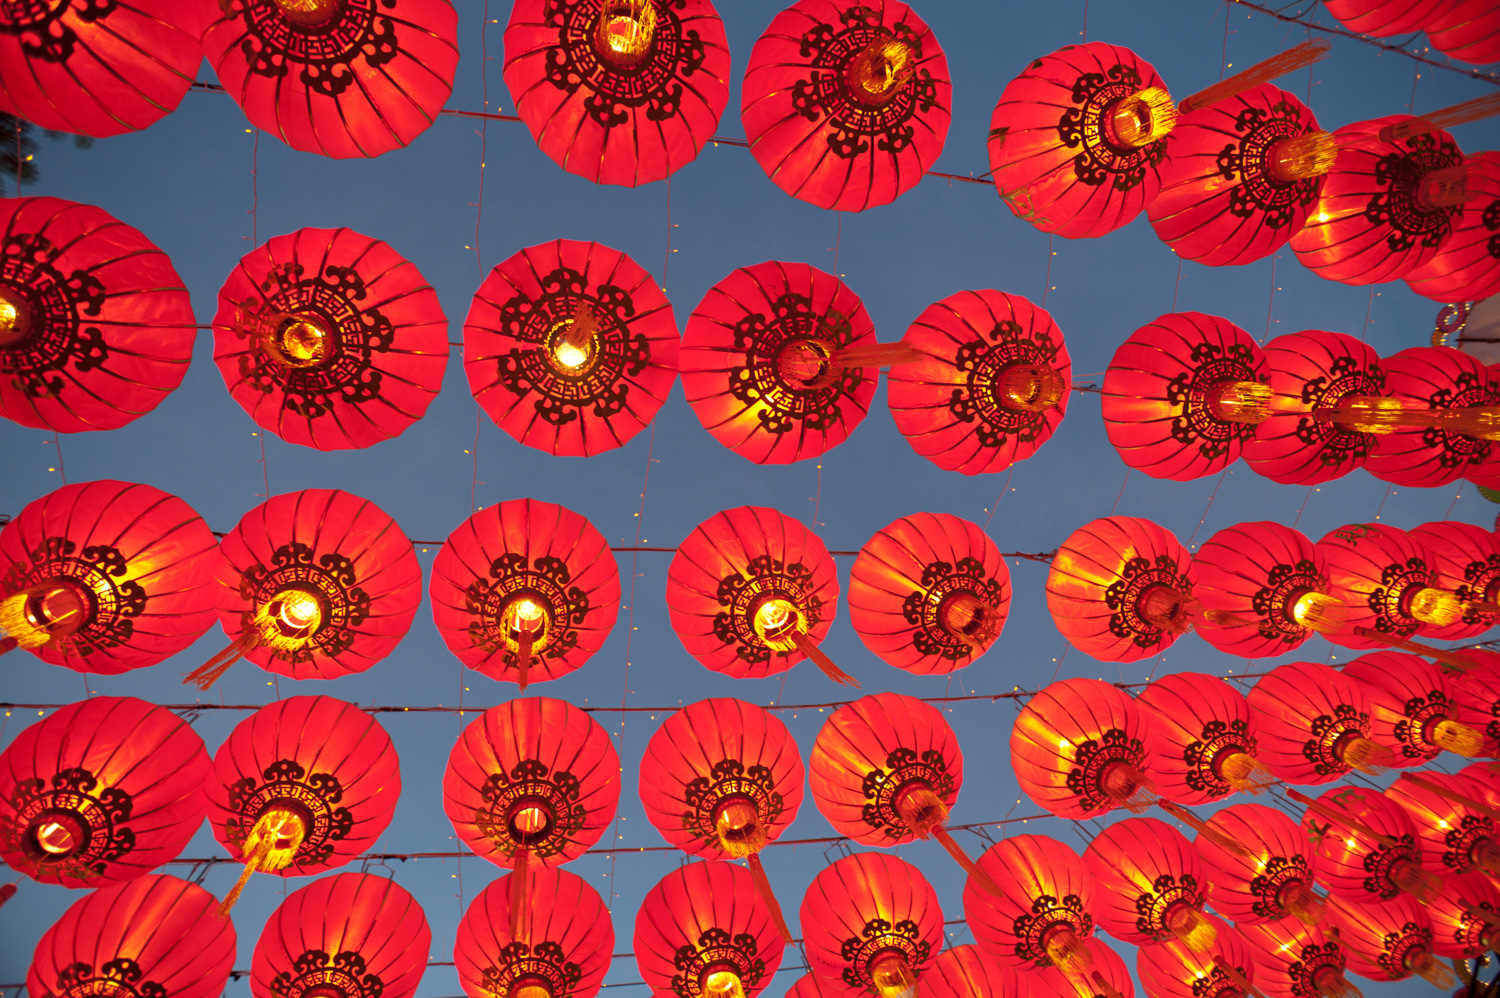 red lanterns against a blue sky